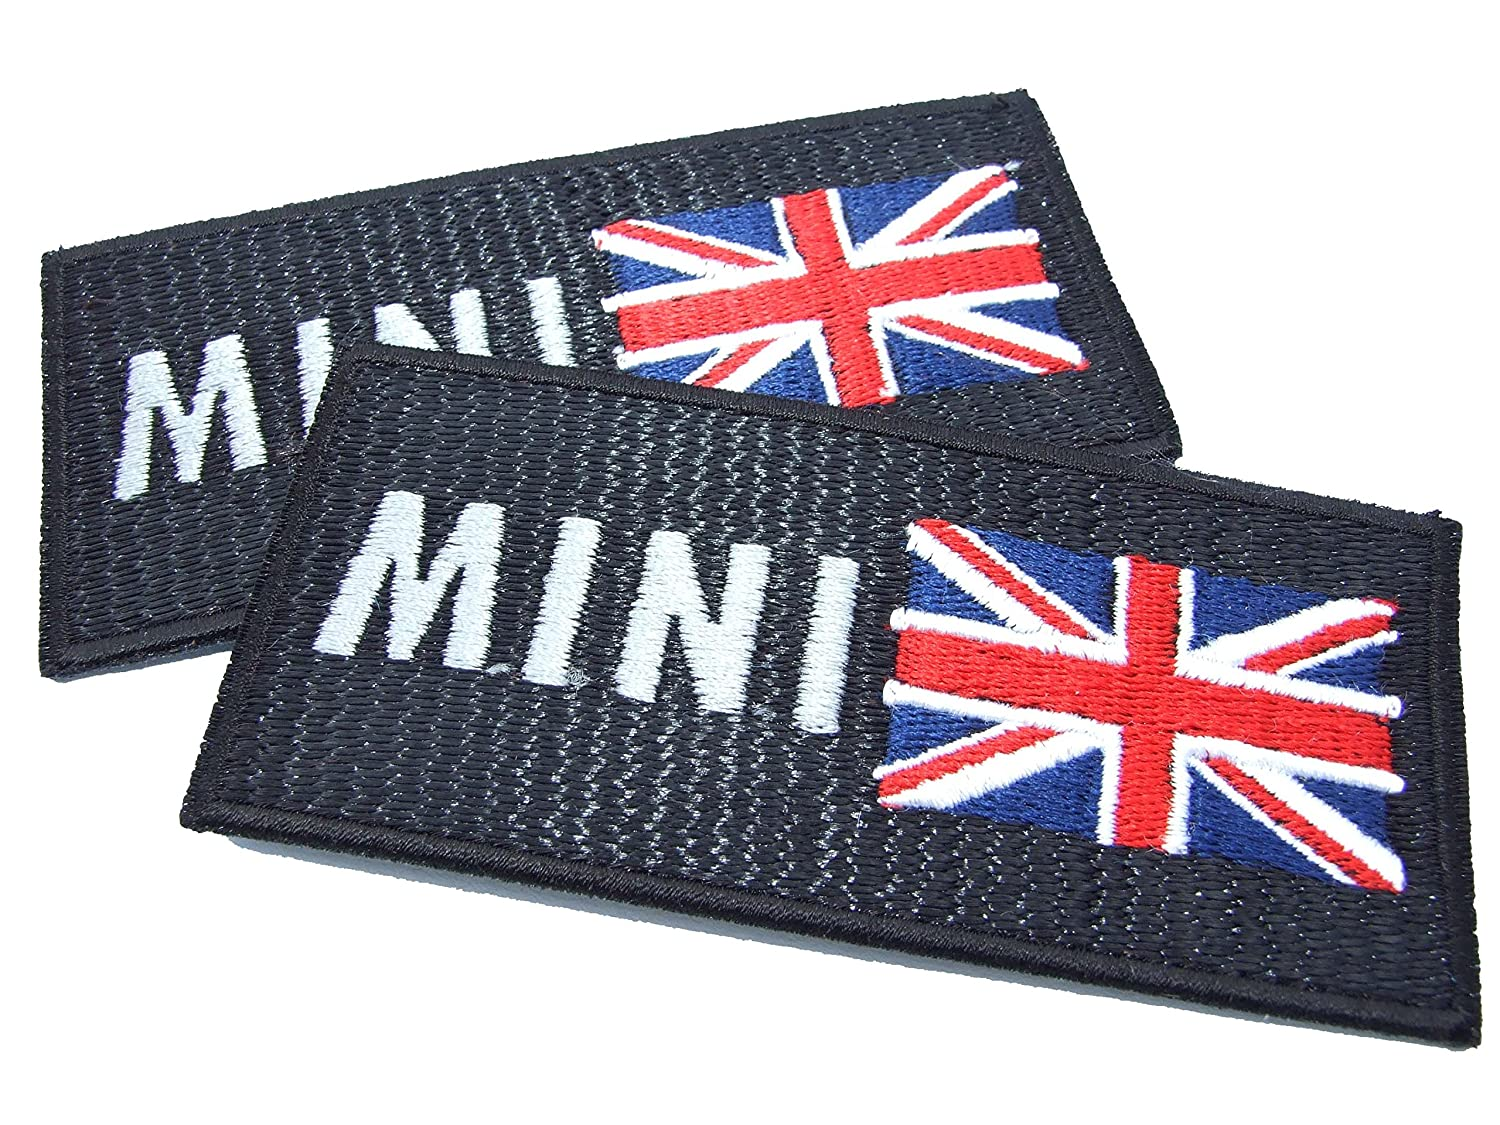 Mini & bandiera inglese, toppa con effetto ottico lock-stitch – 2 off